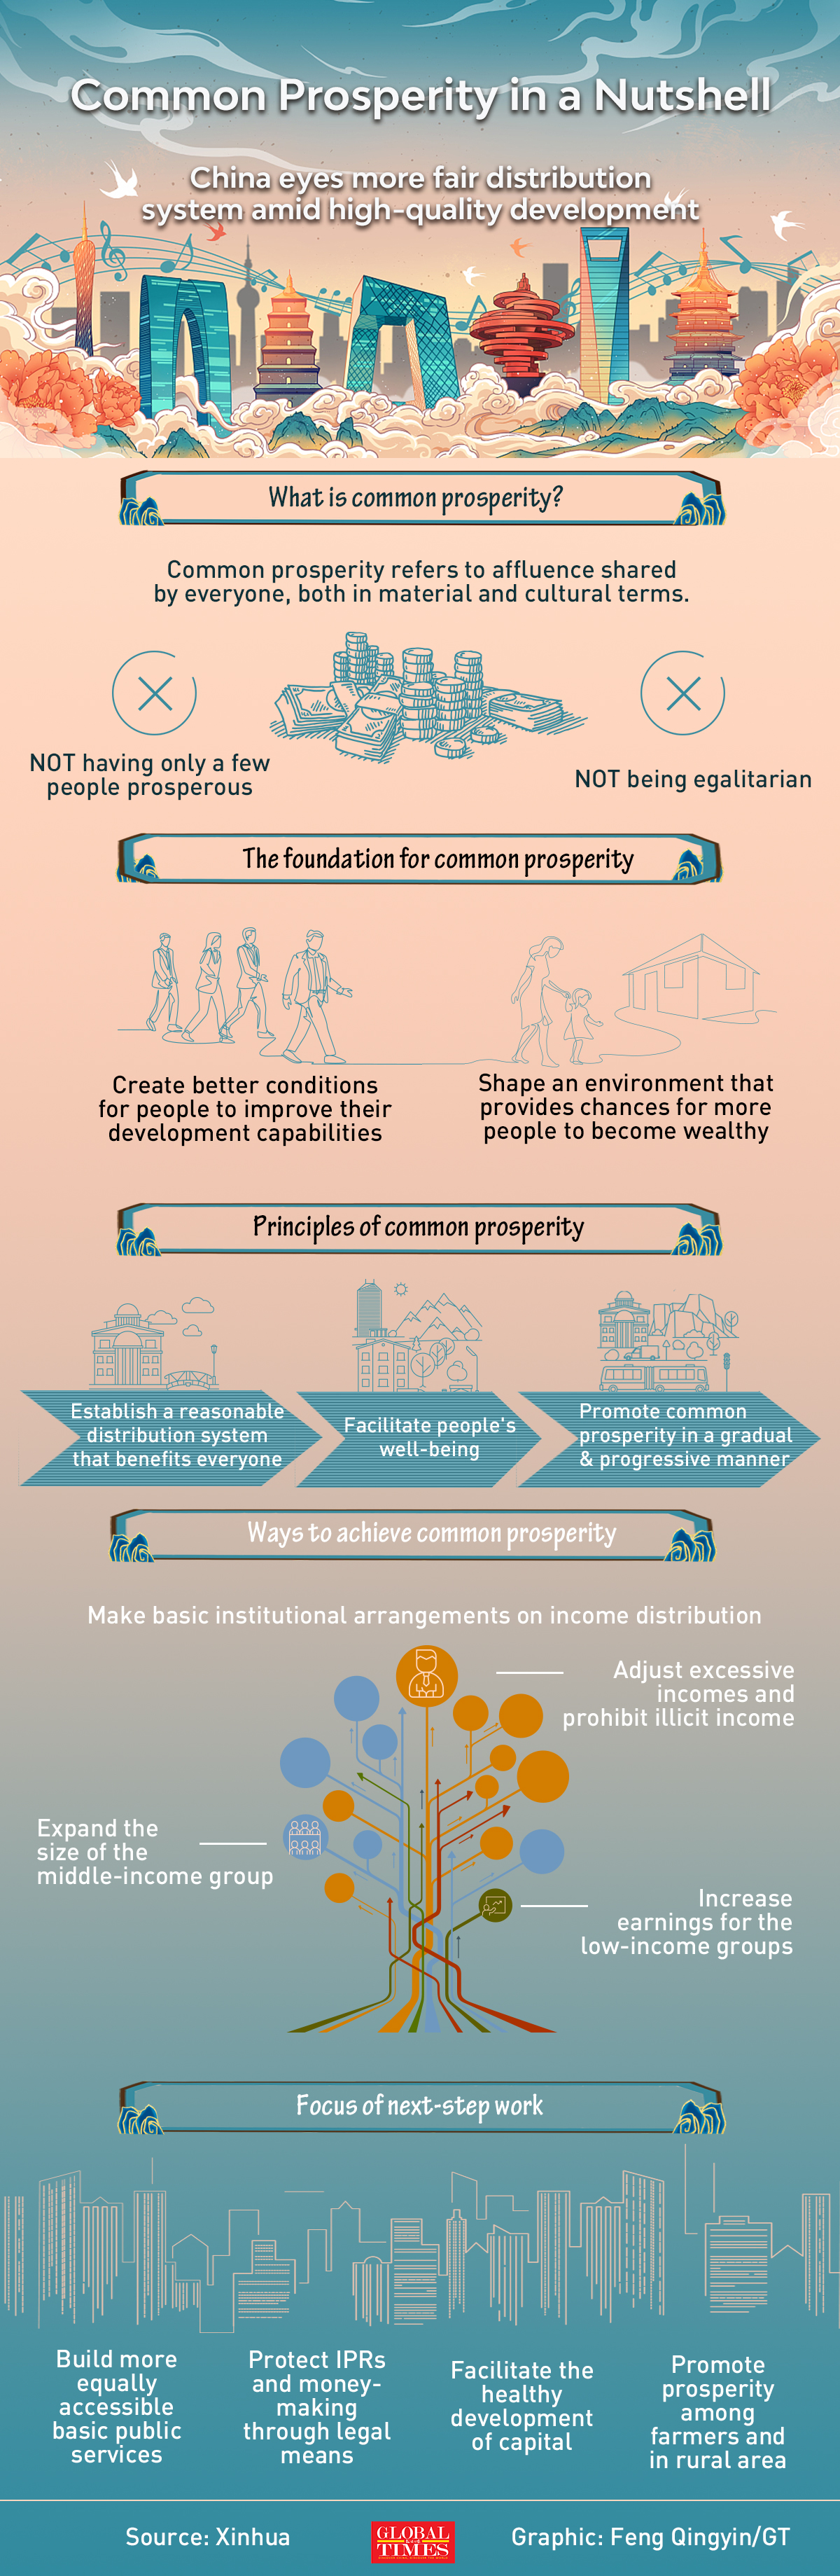 China eyes more fair distribution system amid high-quality development Graphic: Feng Qingyin/GT